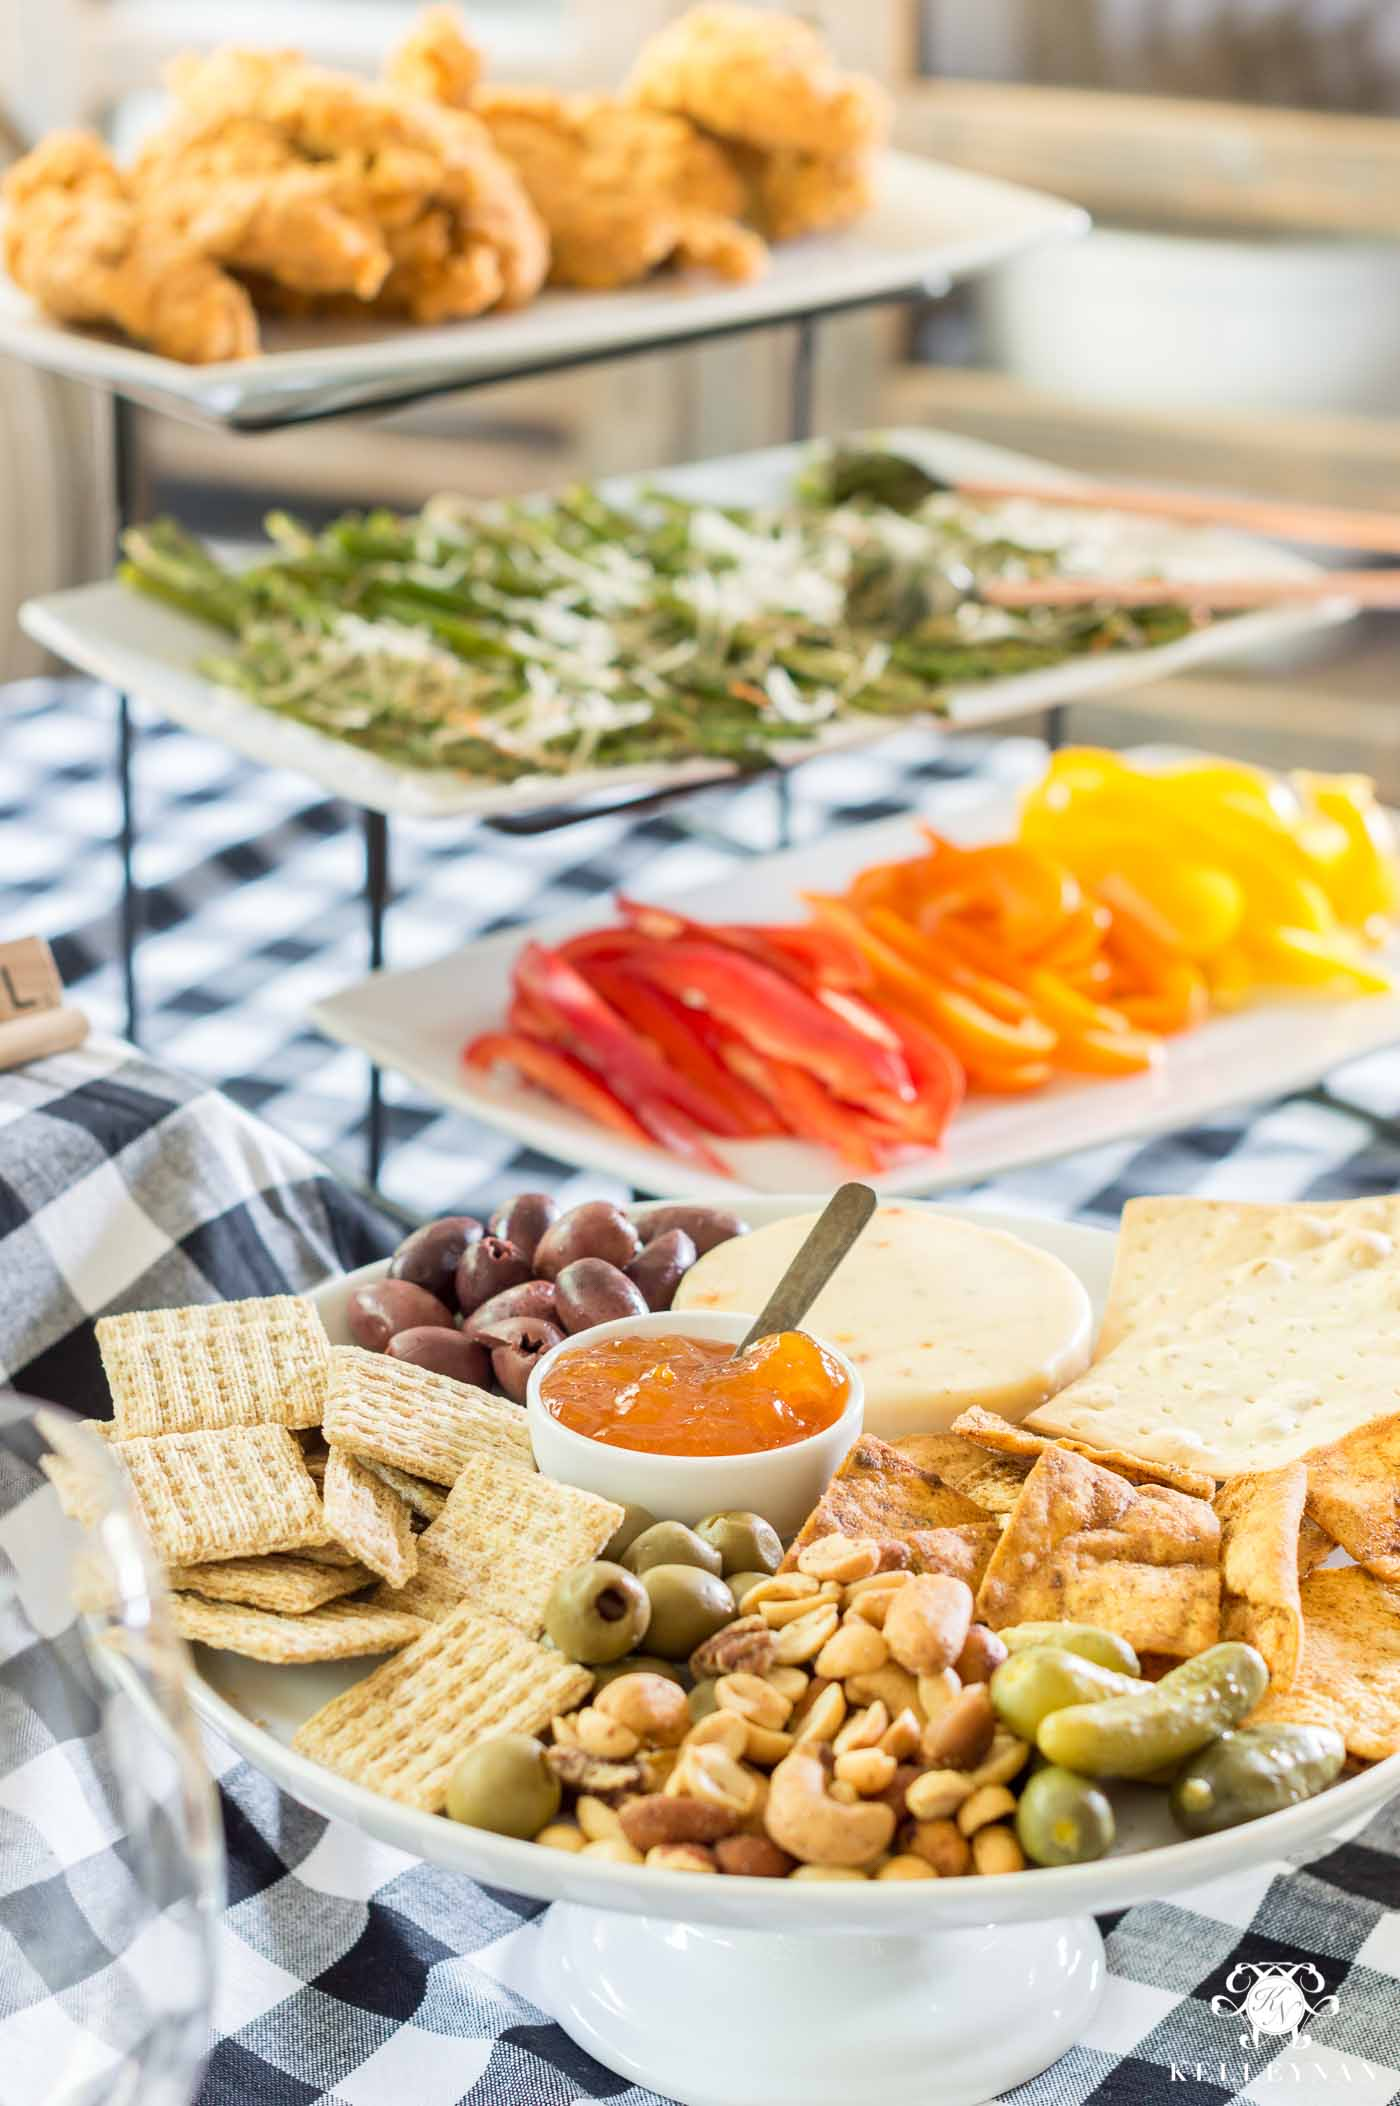 Appetizer meal ideas for a casual game night